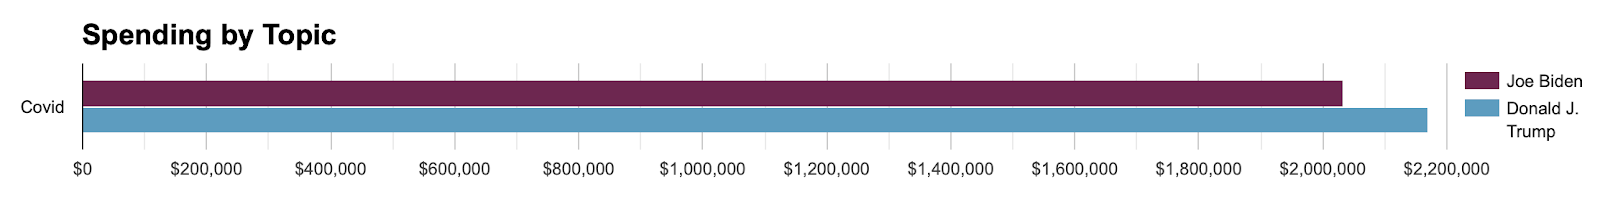 Bar chart showing Biden and Trump total spending on COVID ads from 6/1-11/1. The chart shows both candidates spending slightly above $2 million and Trump spending slightly more overall.